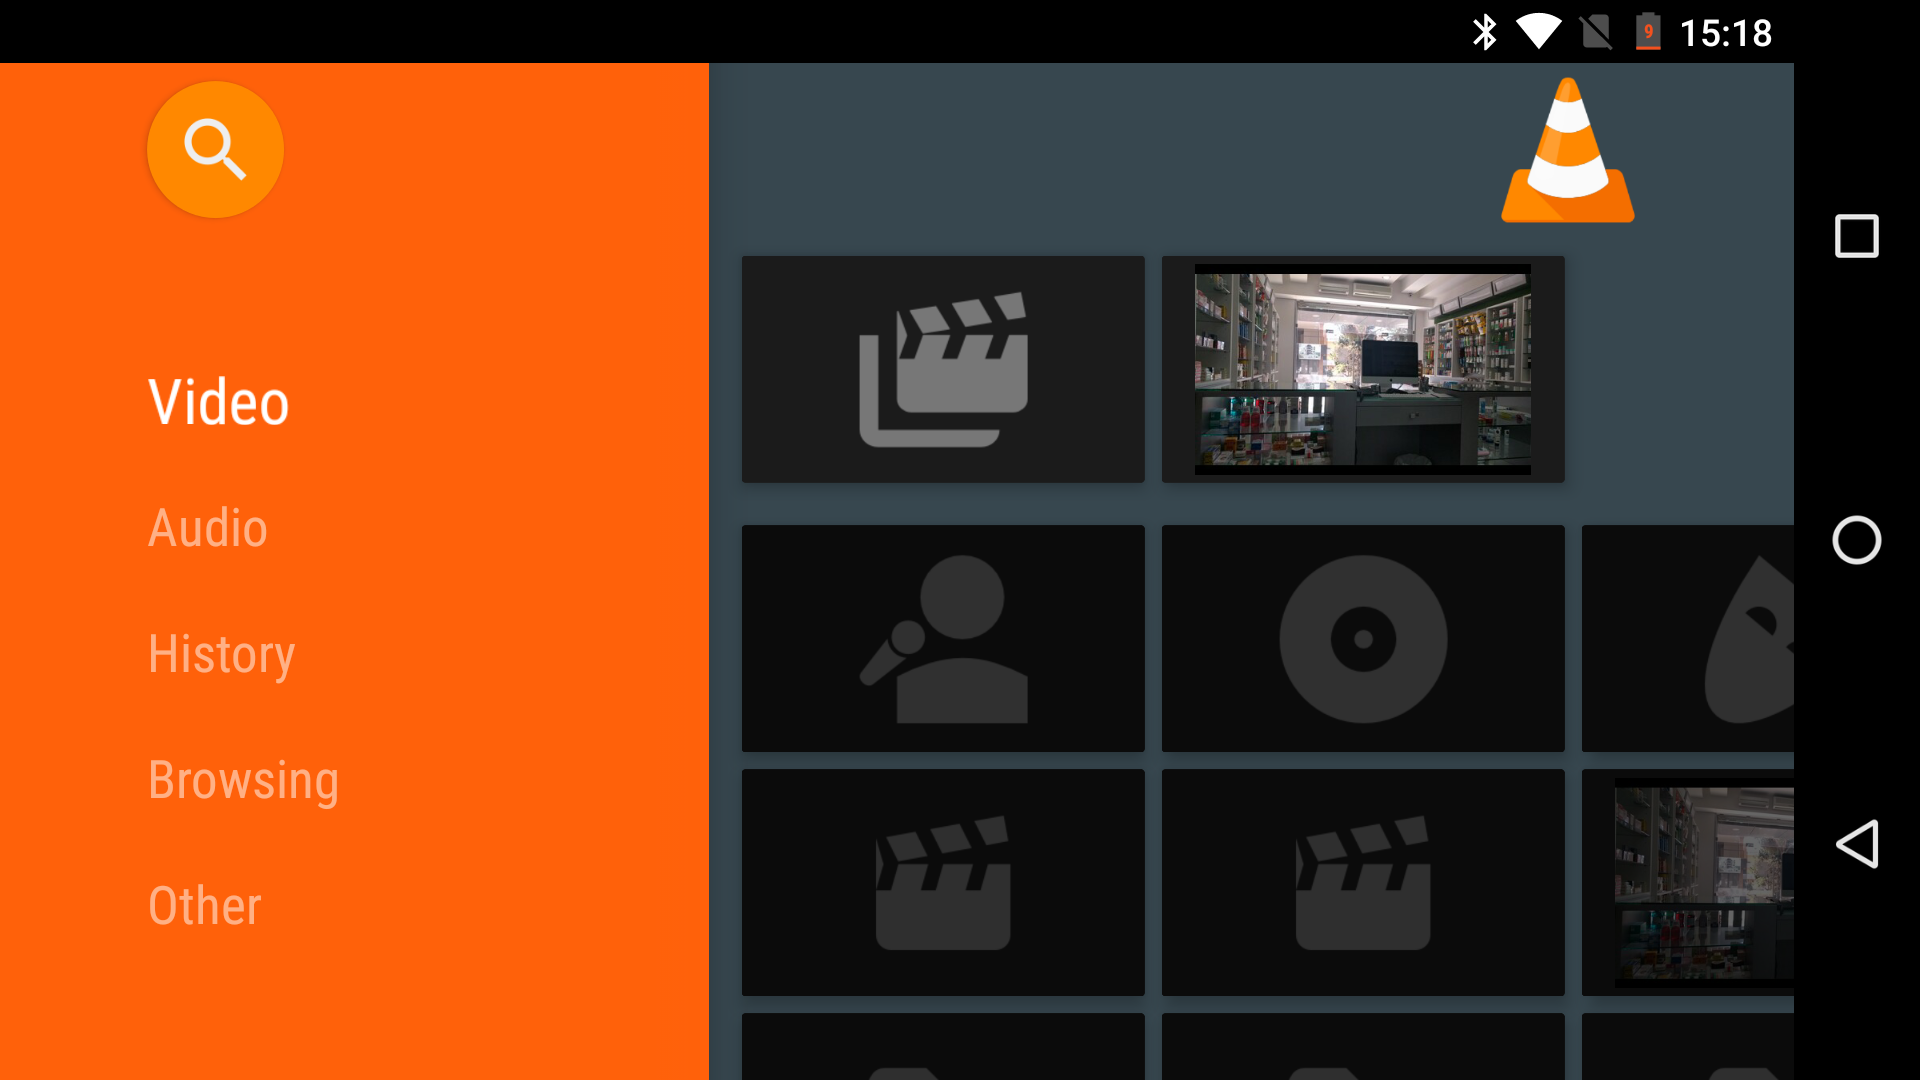 VLC 2.0 Beta Adds Local Network Browsing And Lets You Use The Android TV Interface On Any Device | Drippler - Apps, Games, News, Updates & Accessories